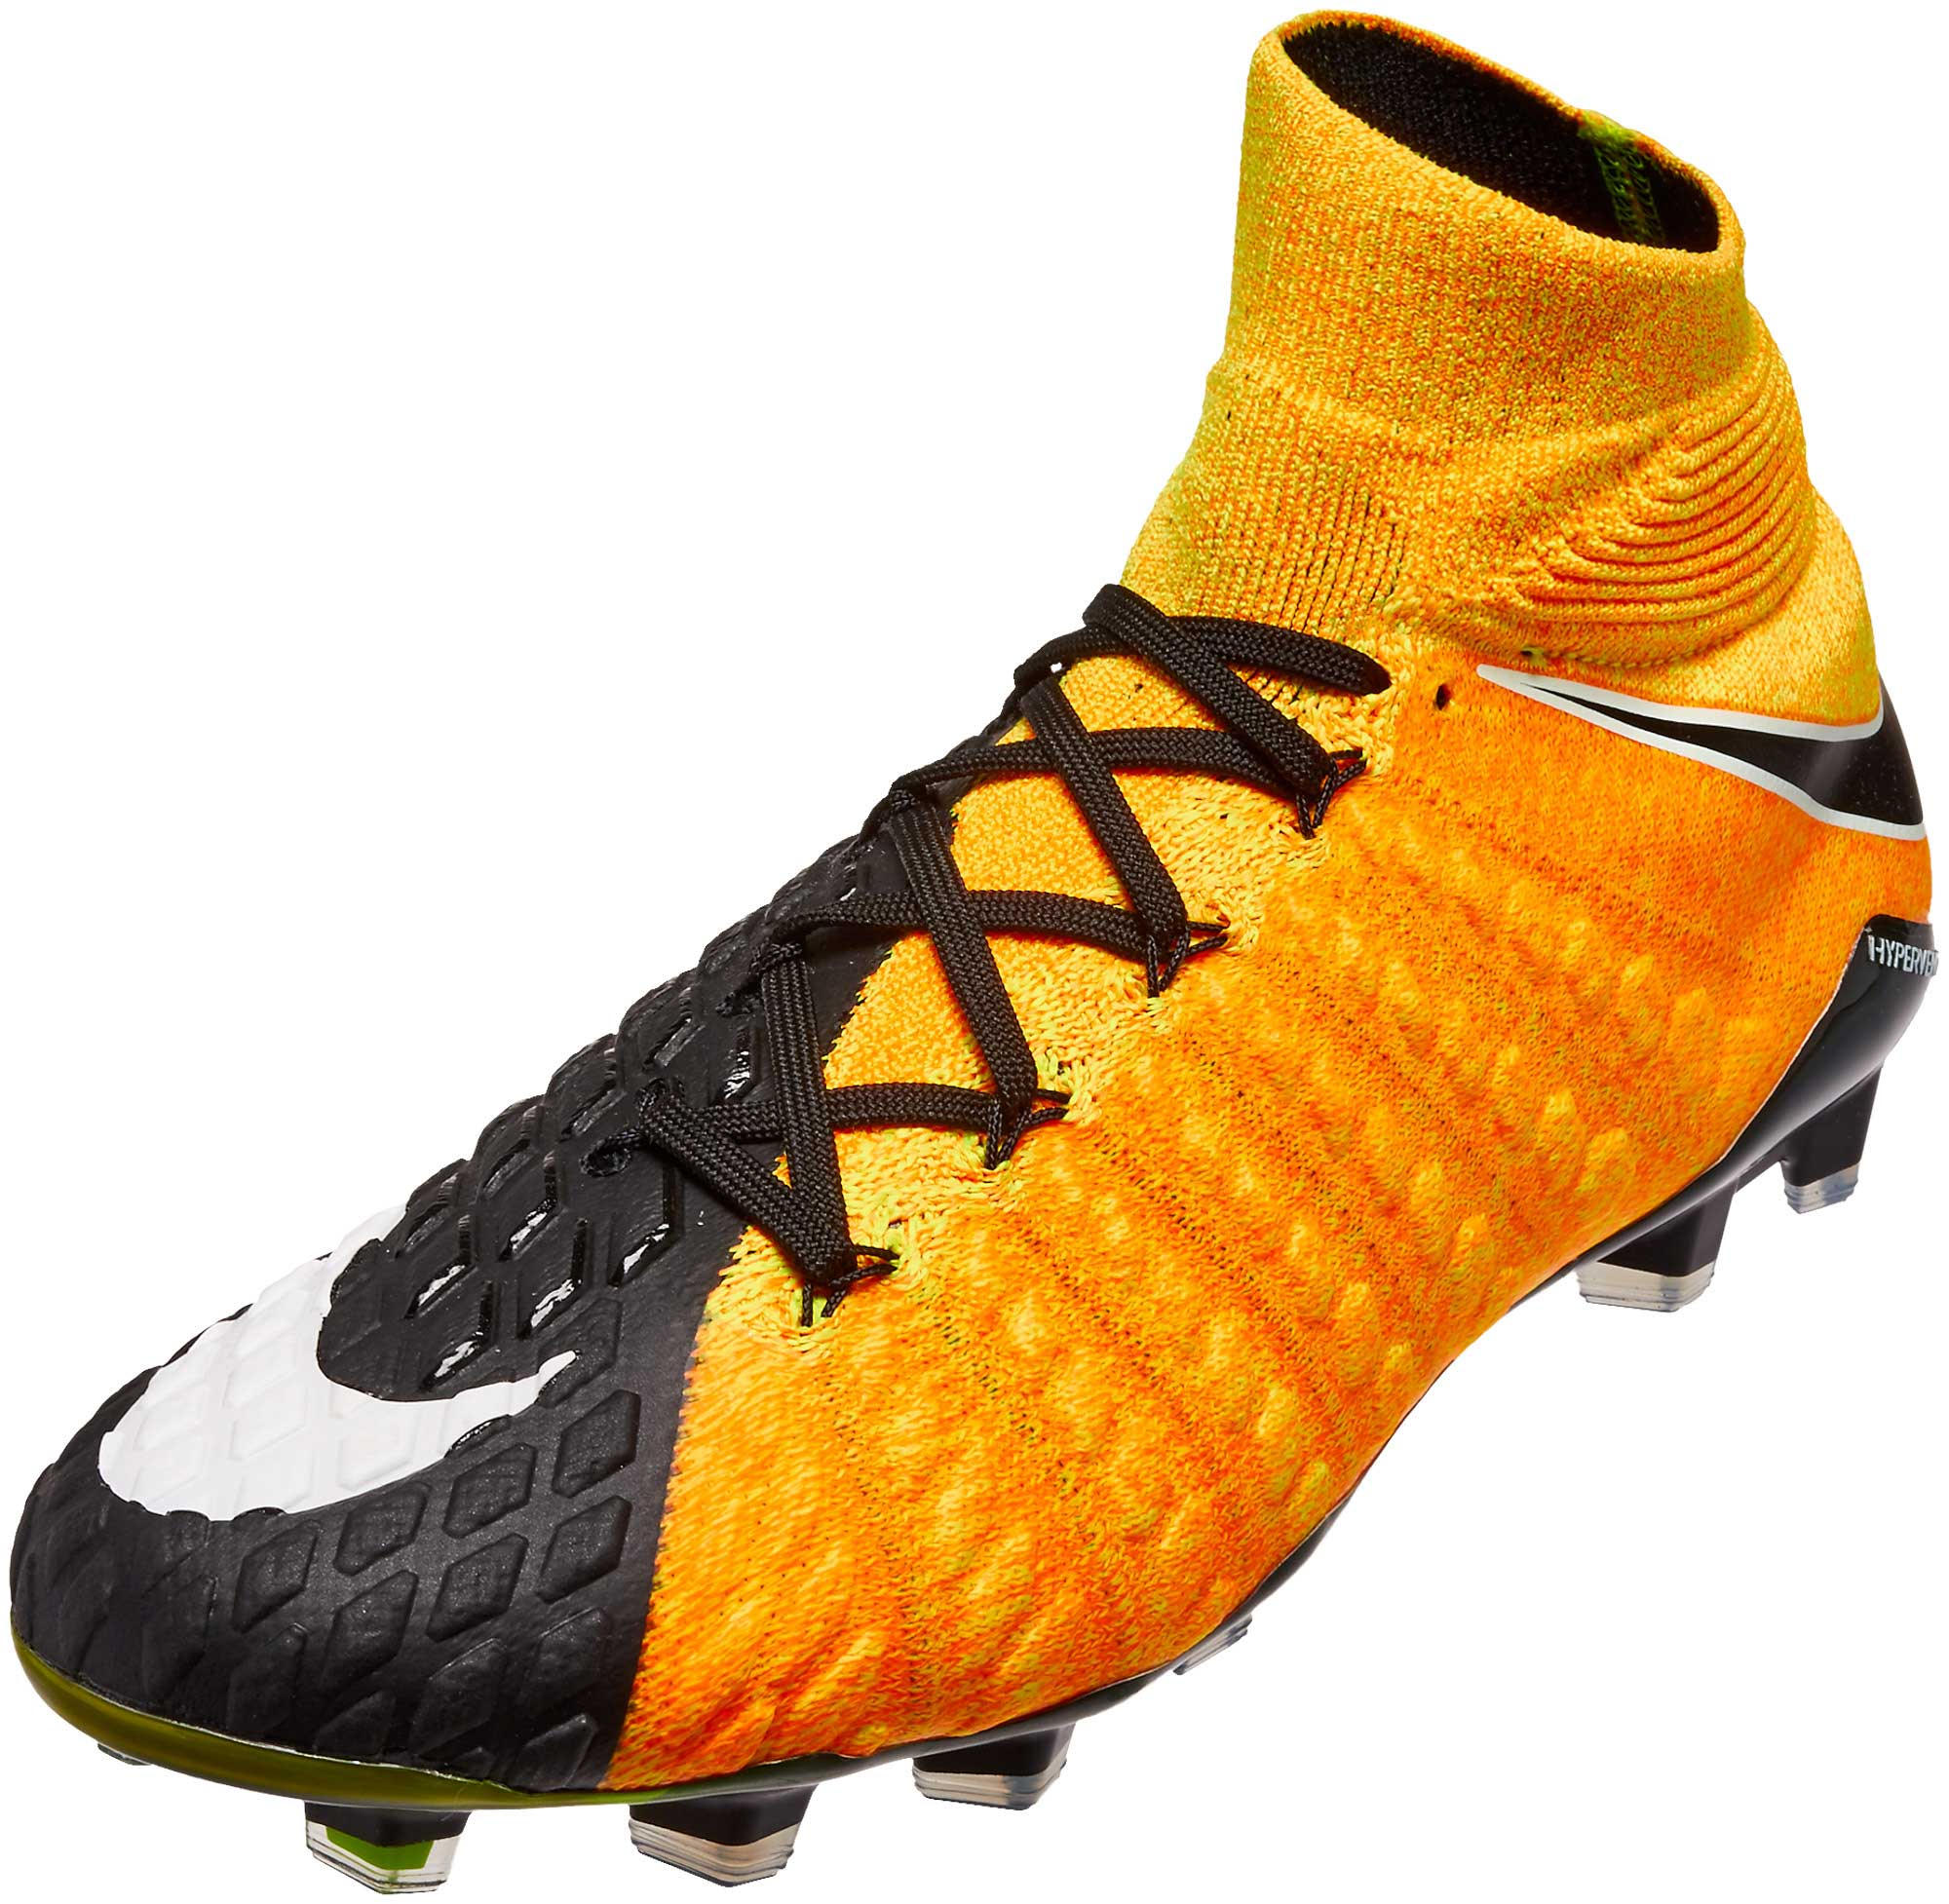 1105fb39c Nike Hypervenom Phantom III DF FG - Laser Orange   Black - Soccer Master